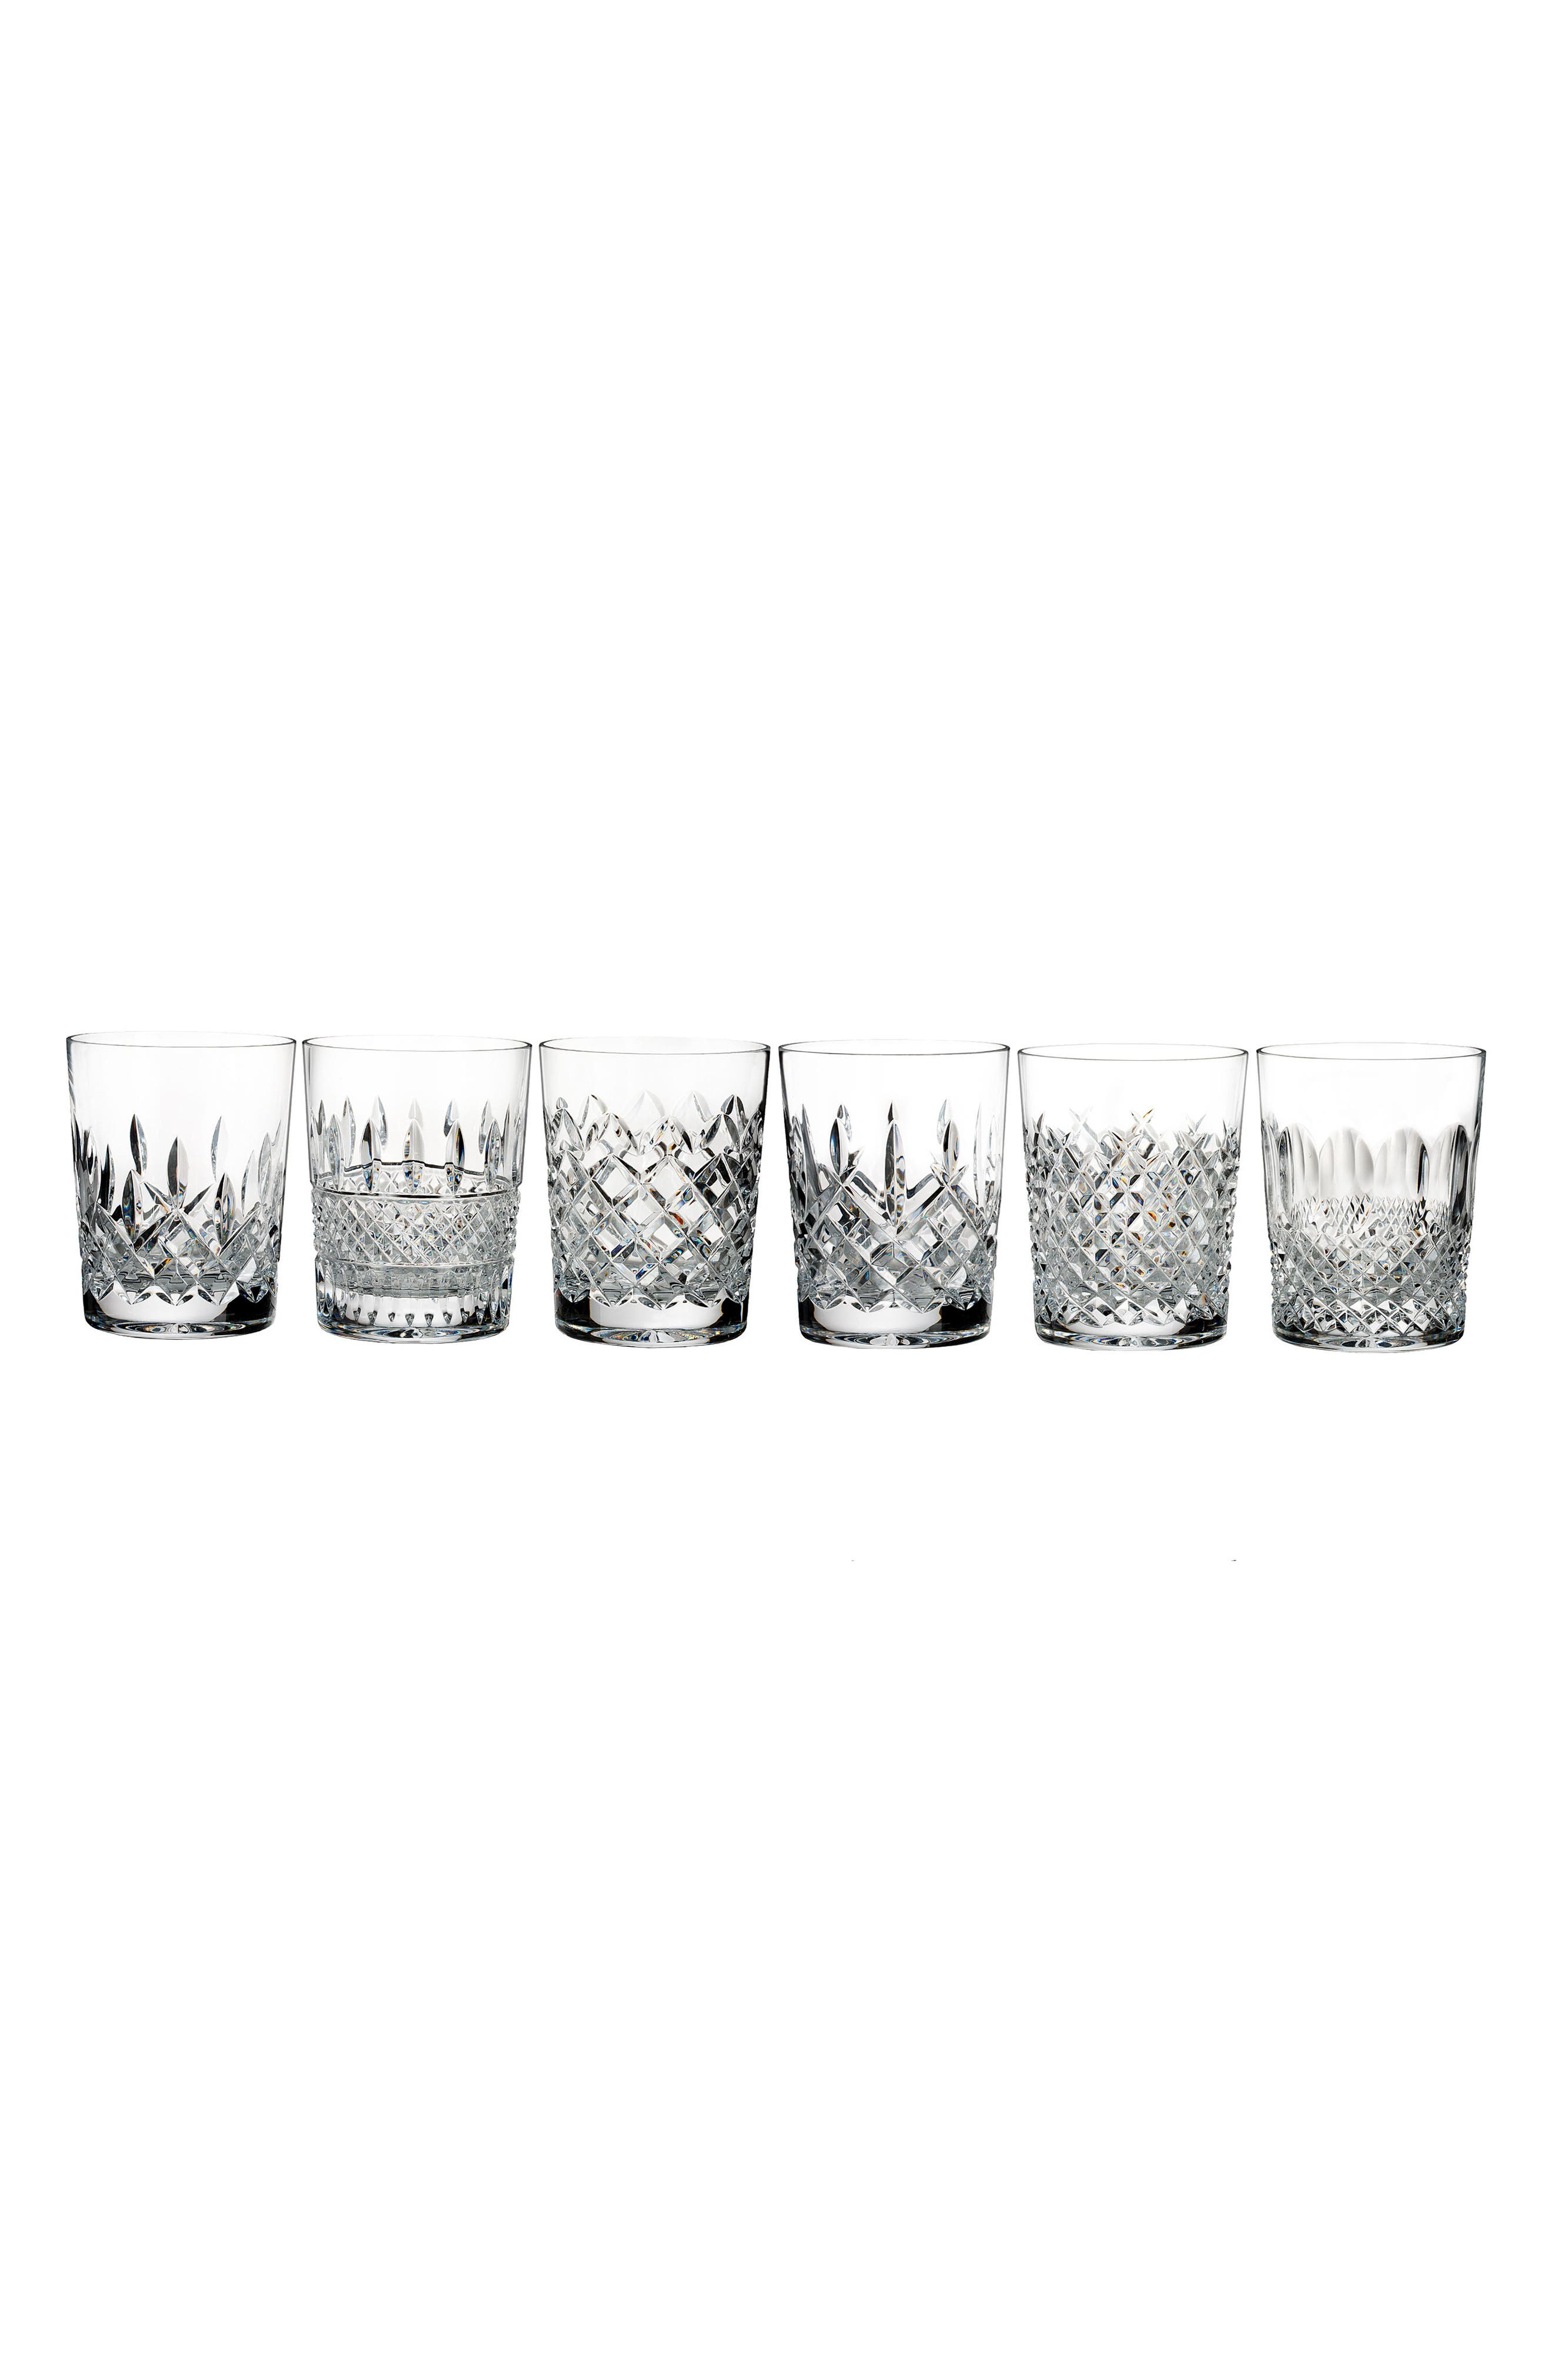 Connoisseur Set of 6 Lead Crystal Double Old Fashioned Glasses,                         Main,                         color, 100